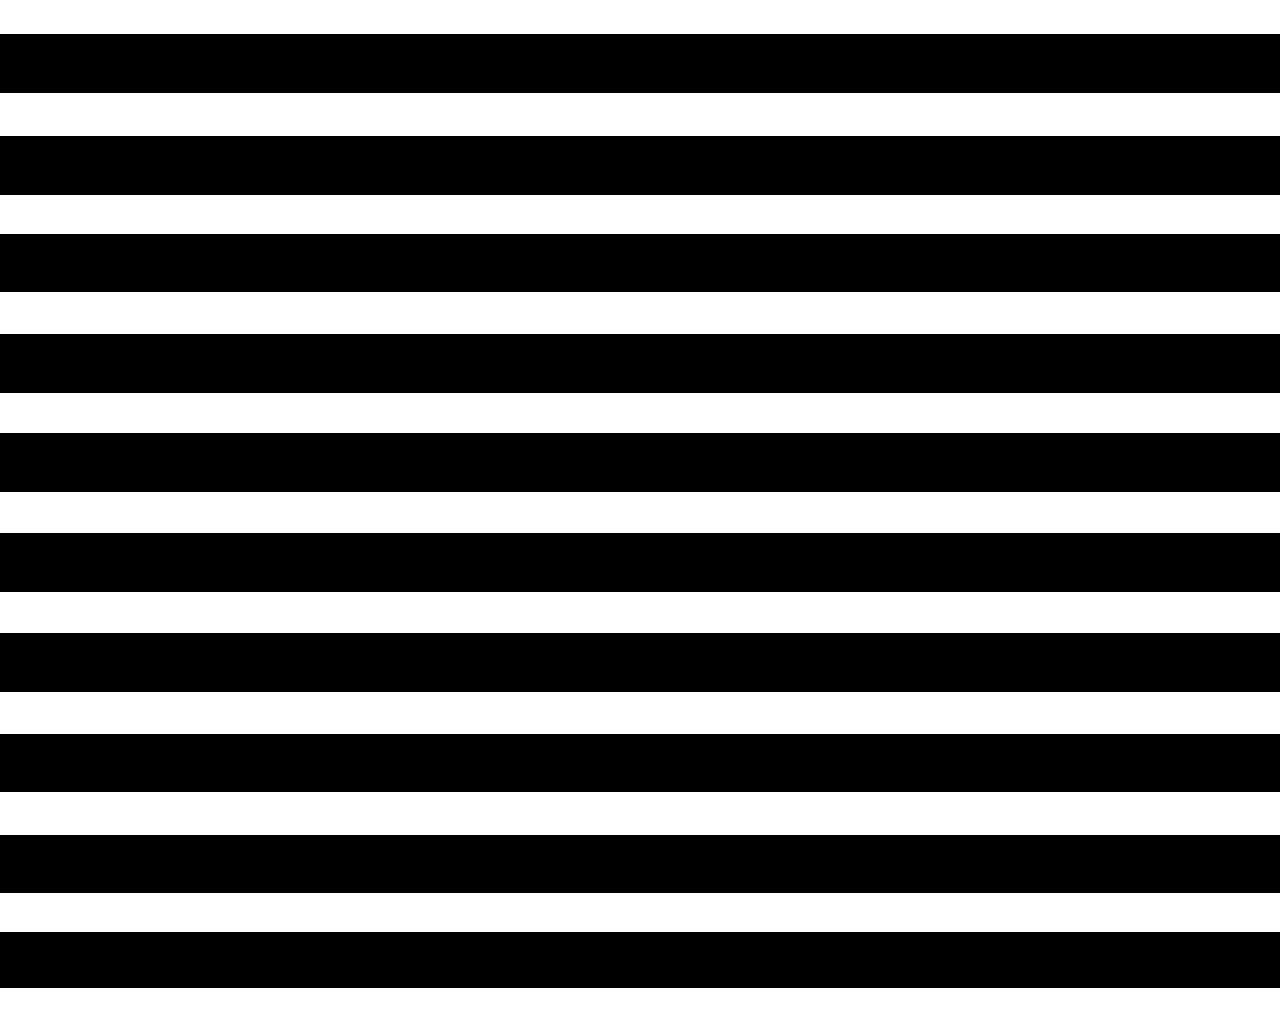 Stripes-Mobile-Phone-Wallpaper